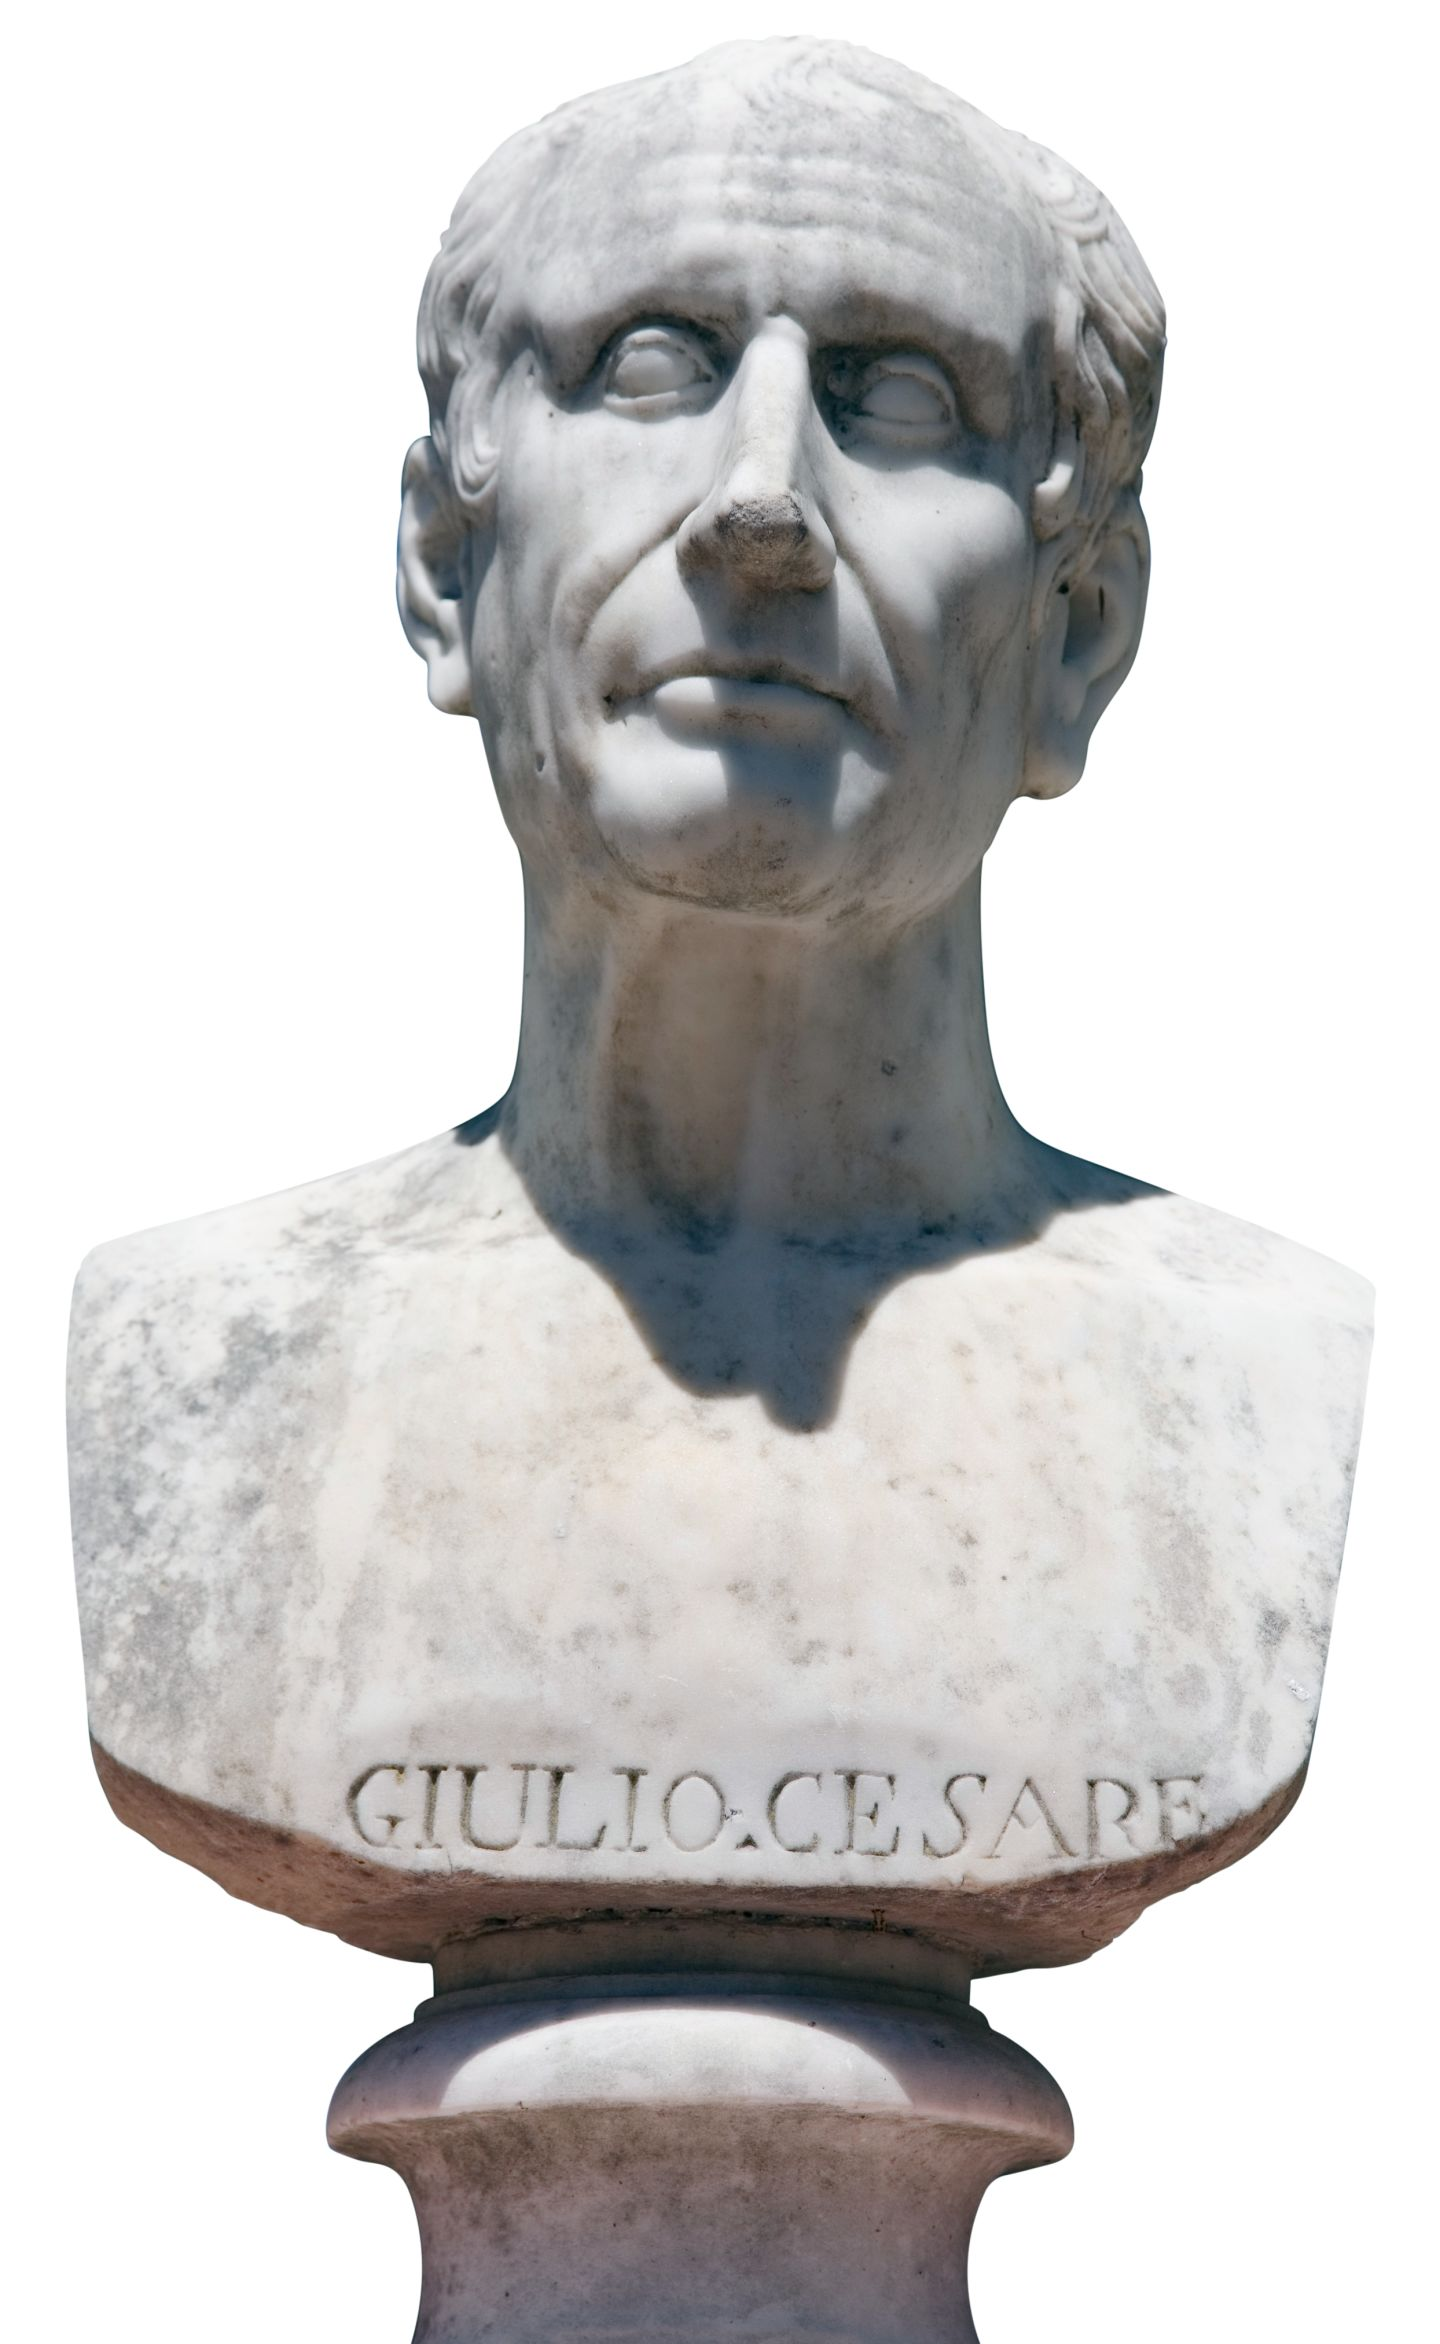 essay on augustus Read this essay on augustus caesar come browse our large digital warehouse of free sample essays get the knowledge you need in order to pass your classes and more.